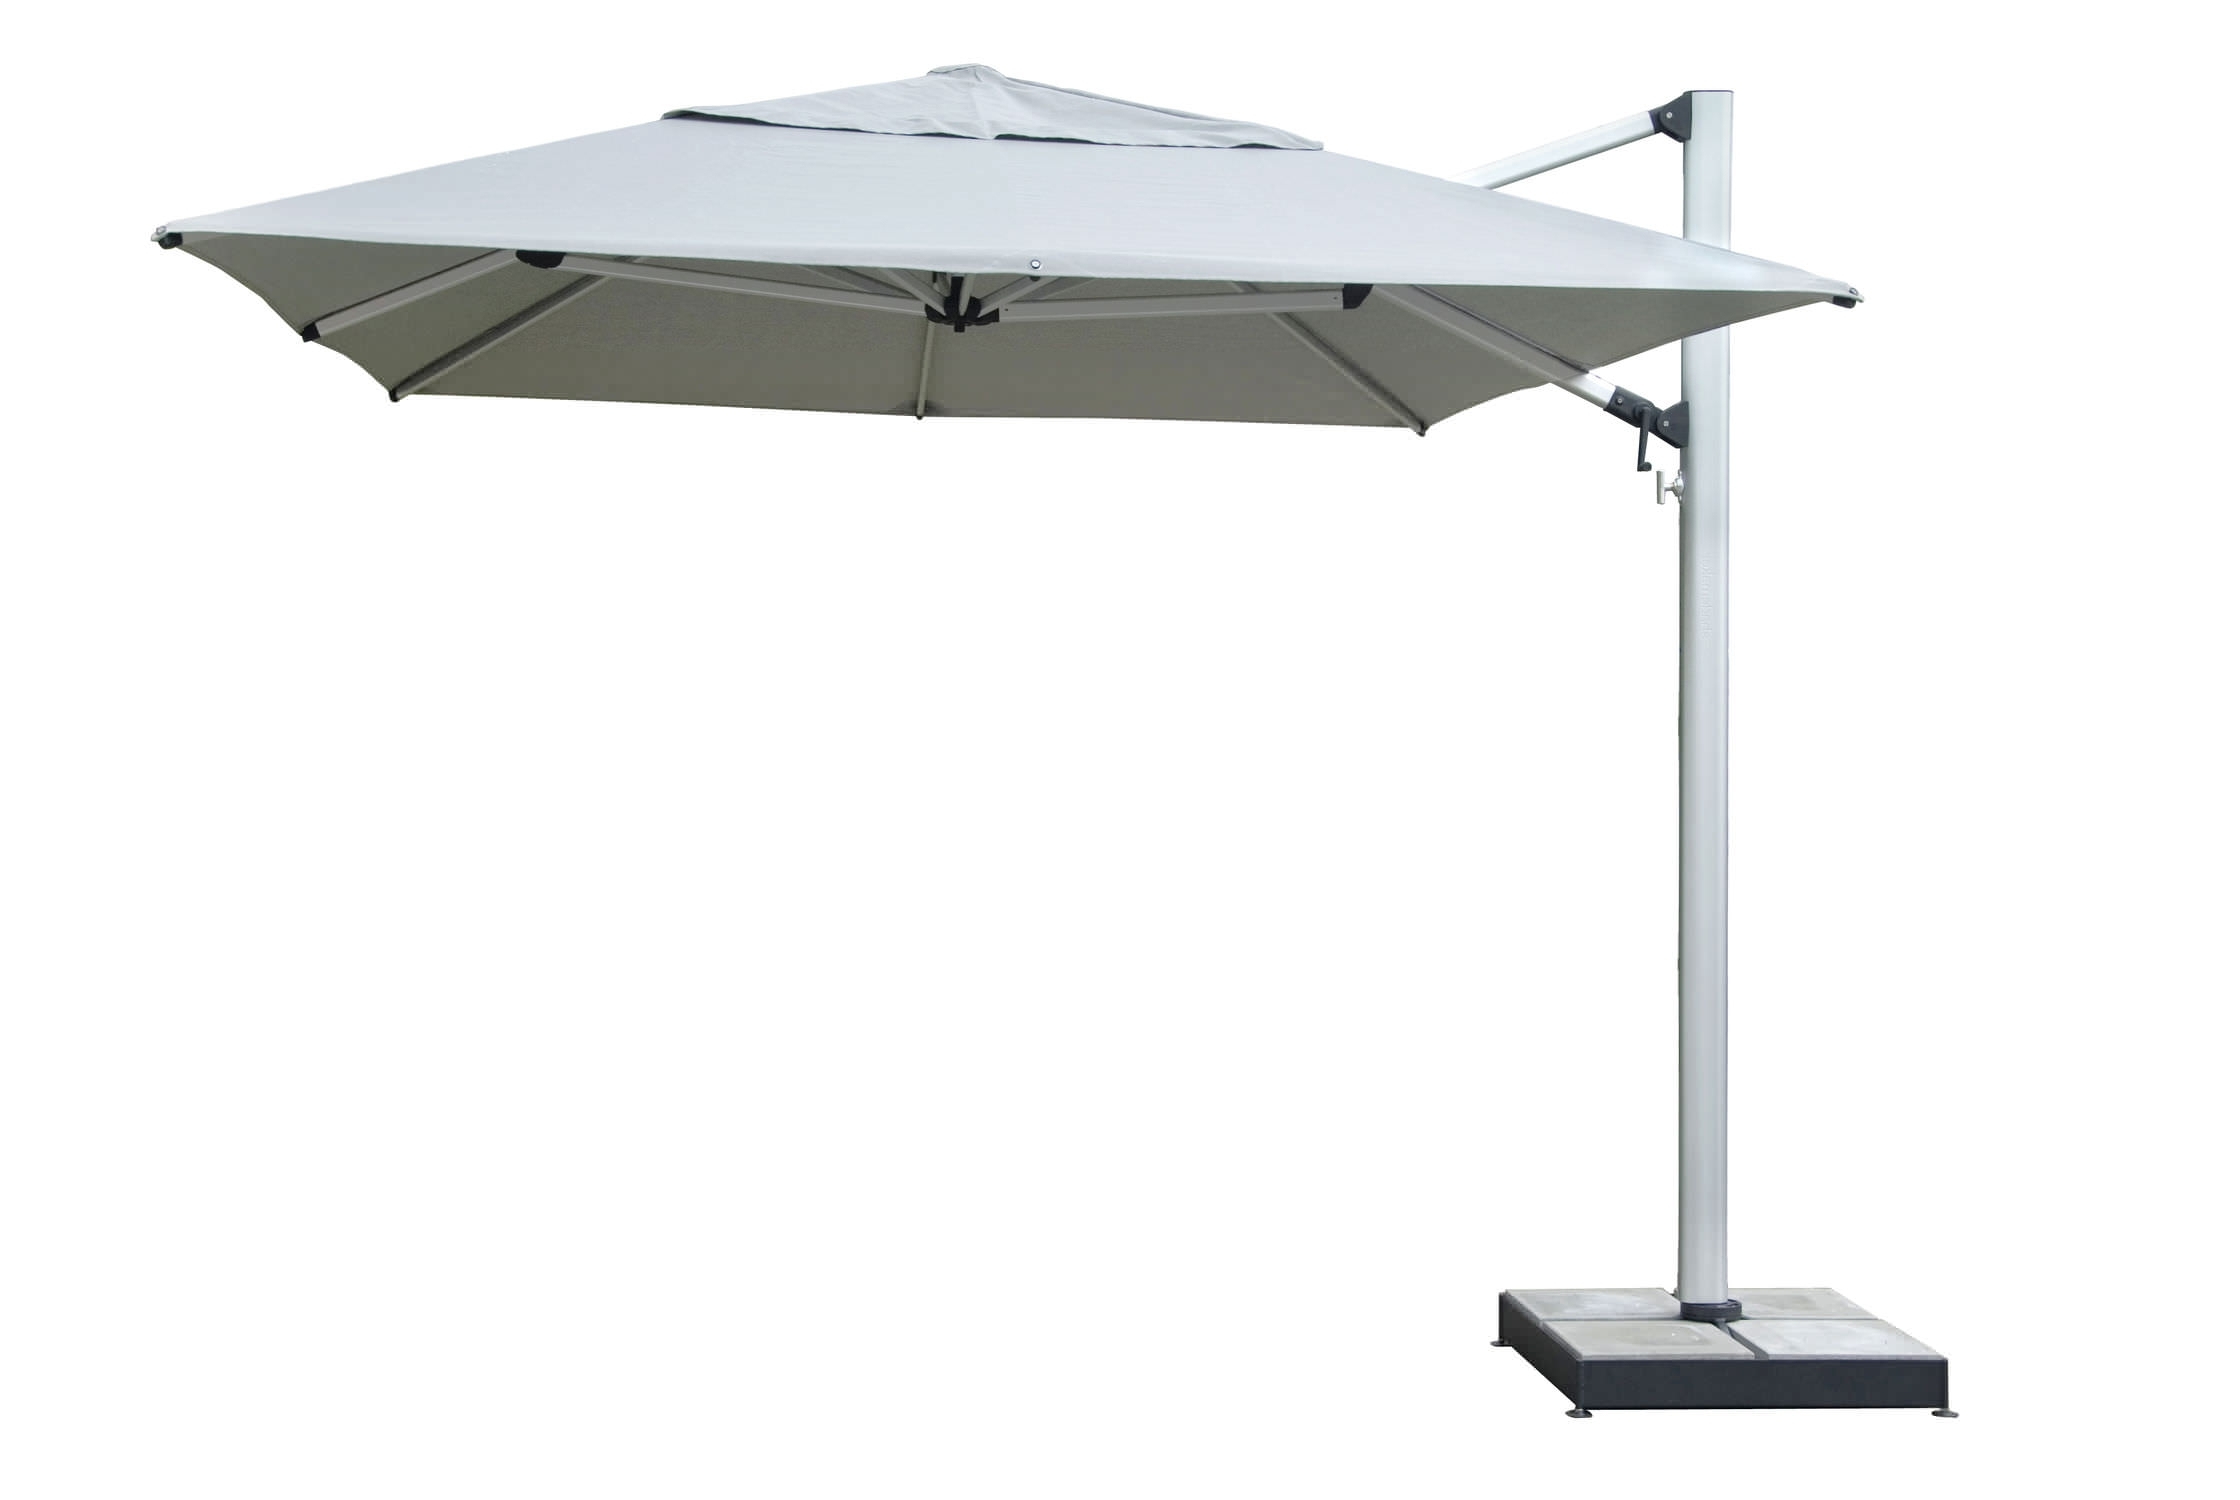 Most Current Furniture: Stainless Steel Patio Umbrella Patio Furniture And Inside White Patio Umbrellas (View 8 of 20)